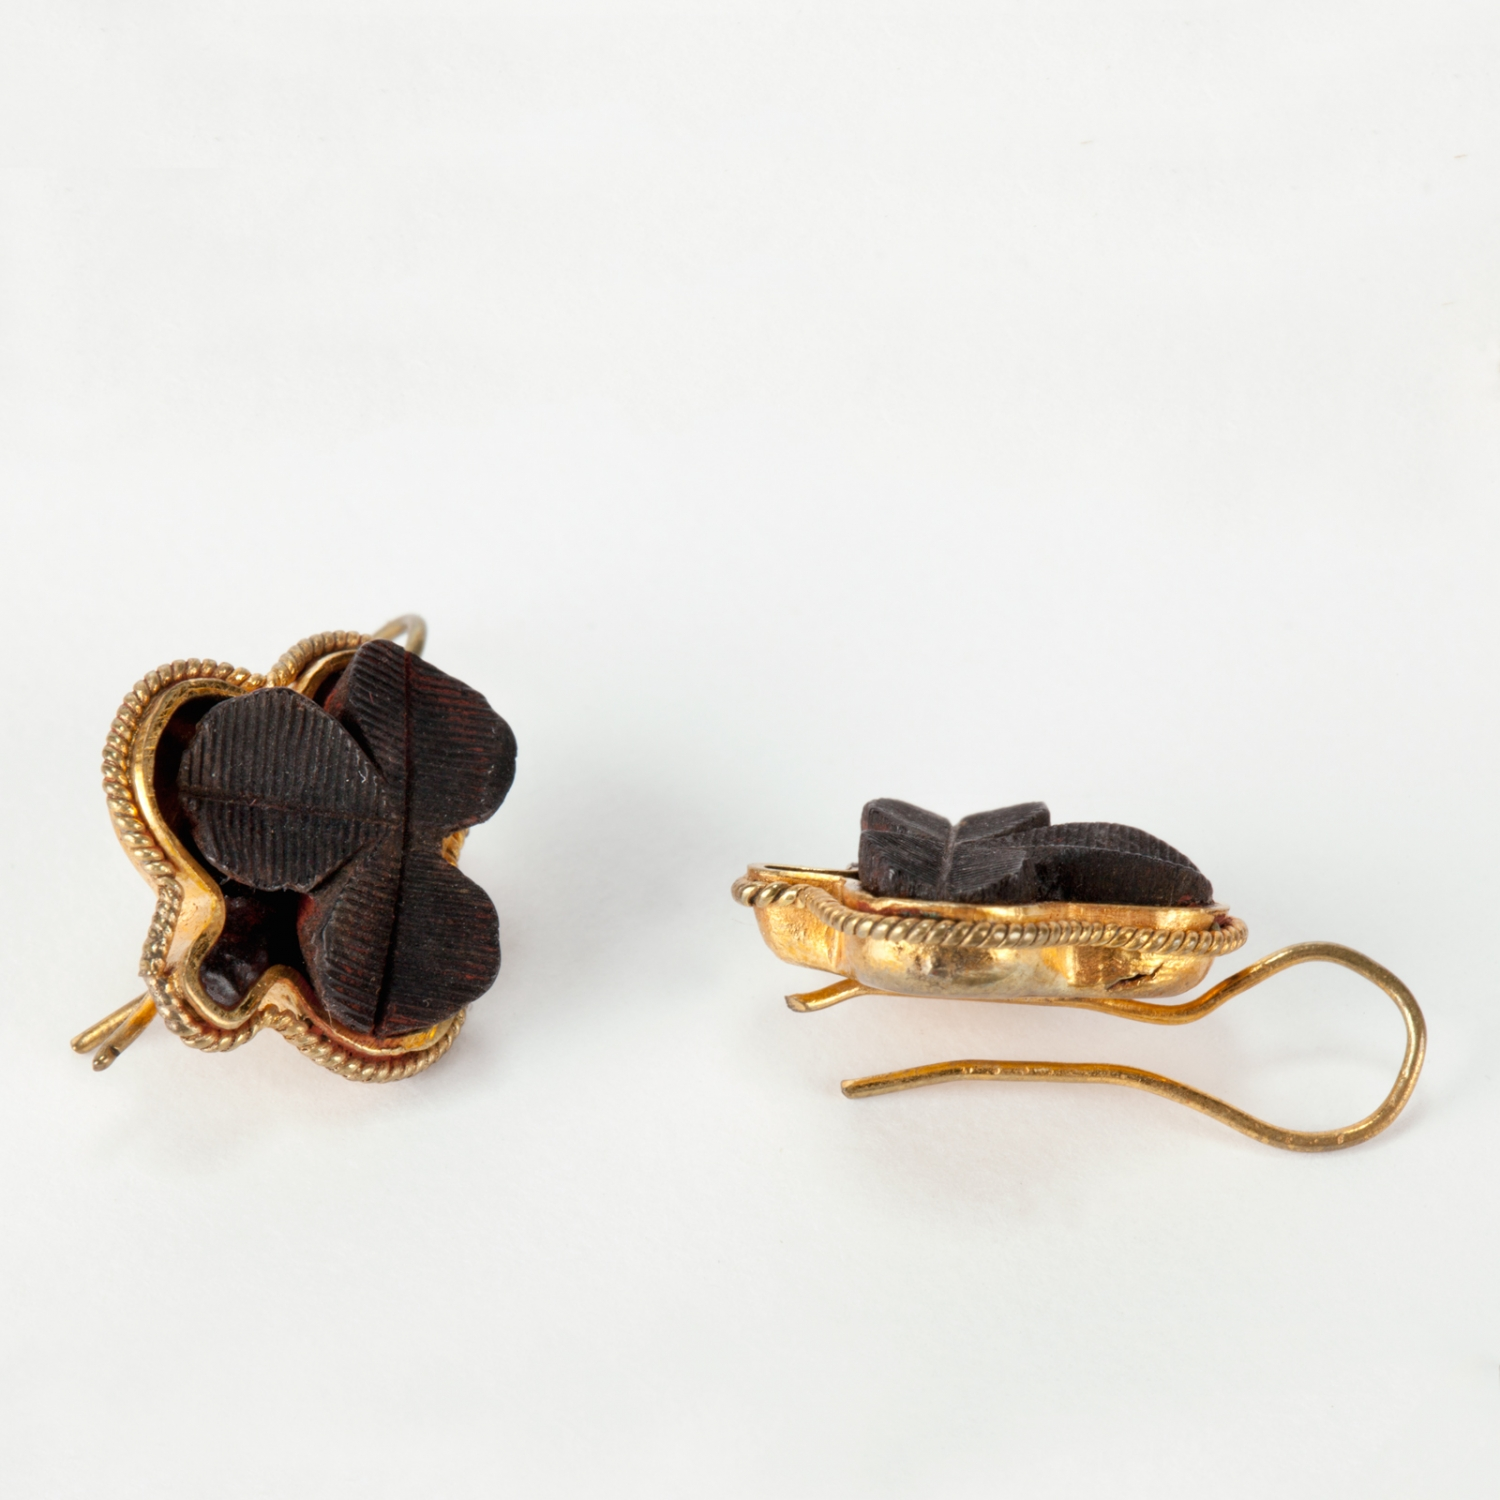 A pair of gold and bog oak earrings designed for pierced ears. Made in Ireland, 1860s.